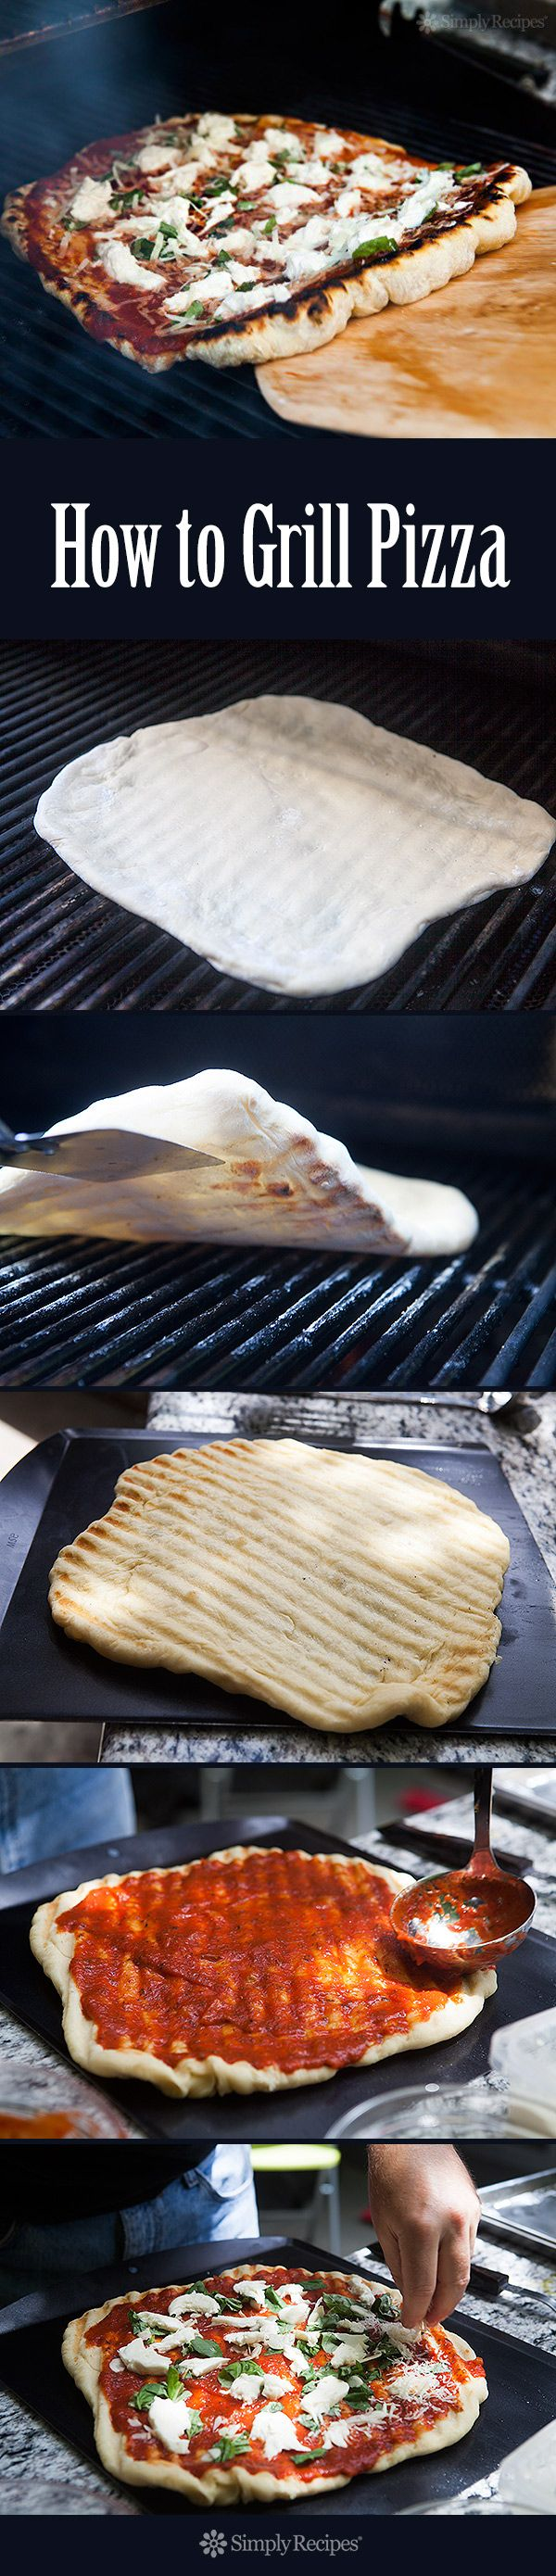 Grilling pizza is the easiest way to make pizza, and you get that great grilled flavor too. NO, the dough does not fall through the grates! See the step-by-step instructions on SimplyRecipes.com #MemorialDay #LaborDay